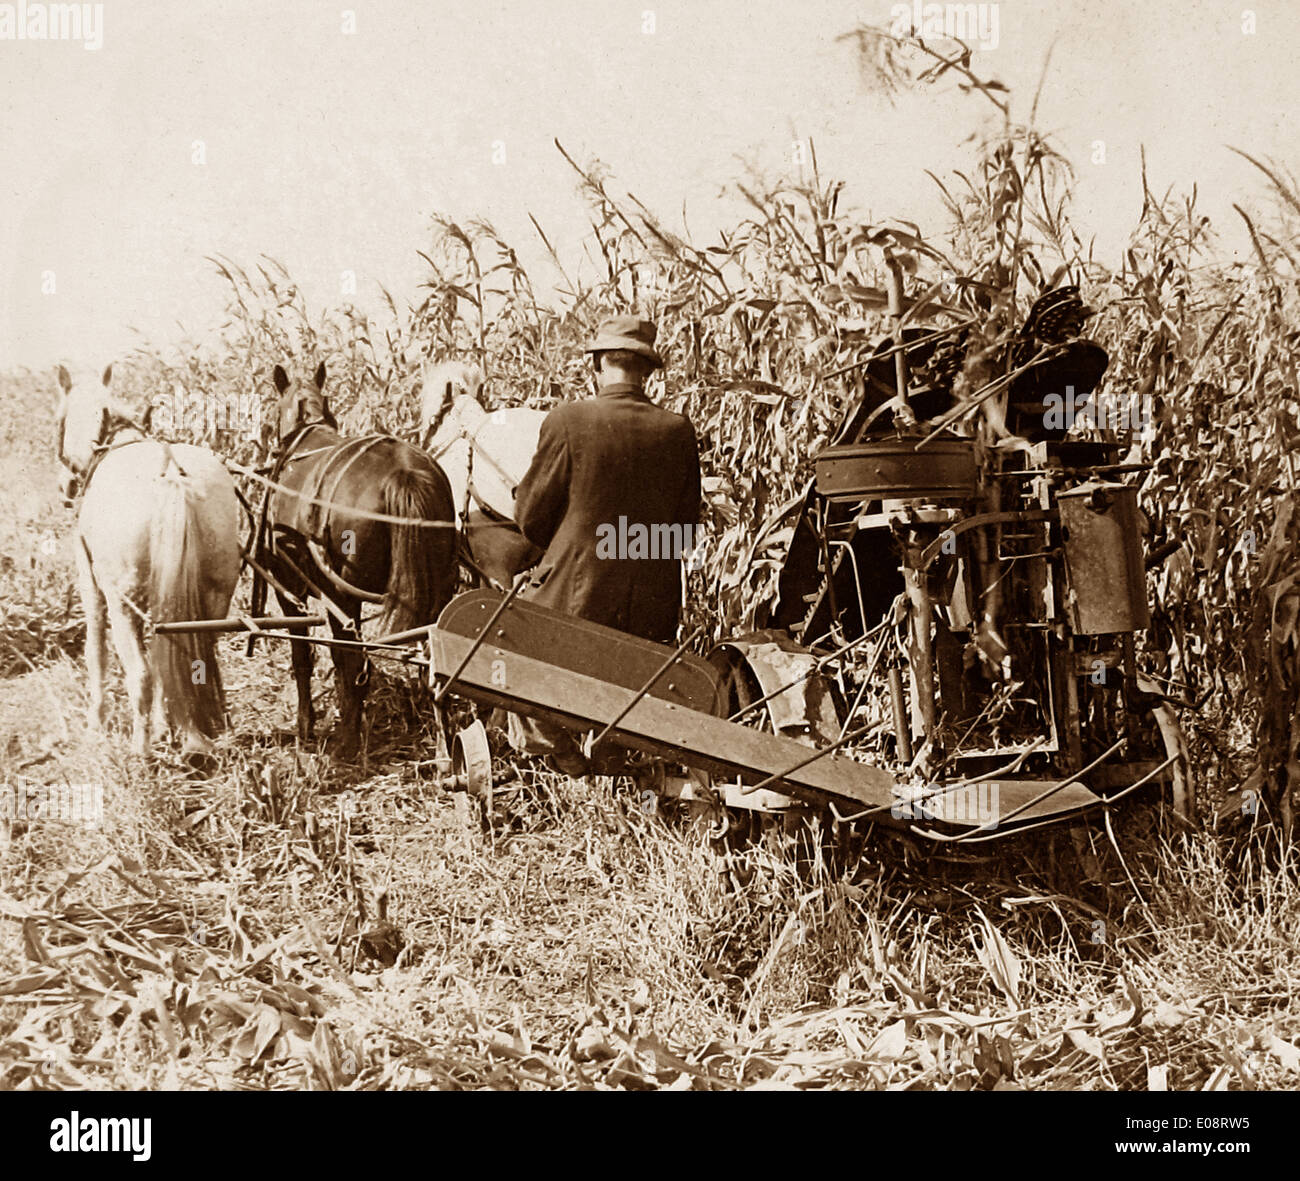 Corn harvesting in Indiana early 1900s - Stock Image